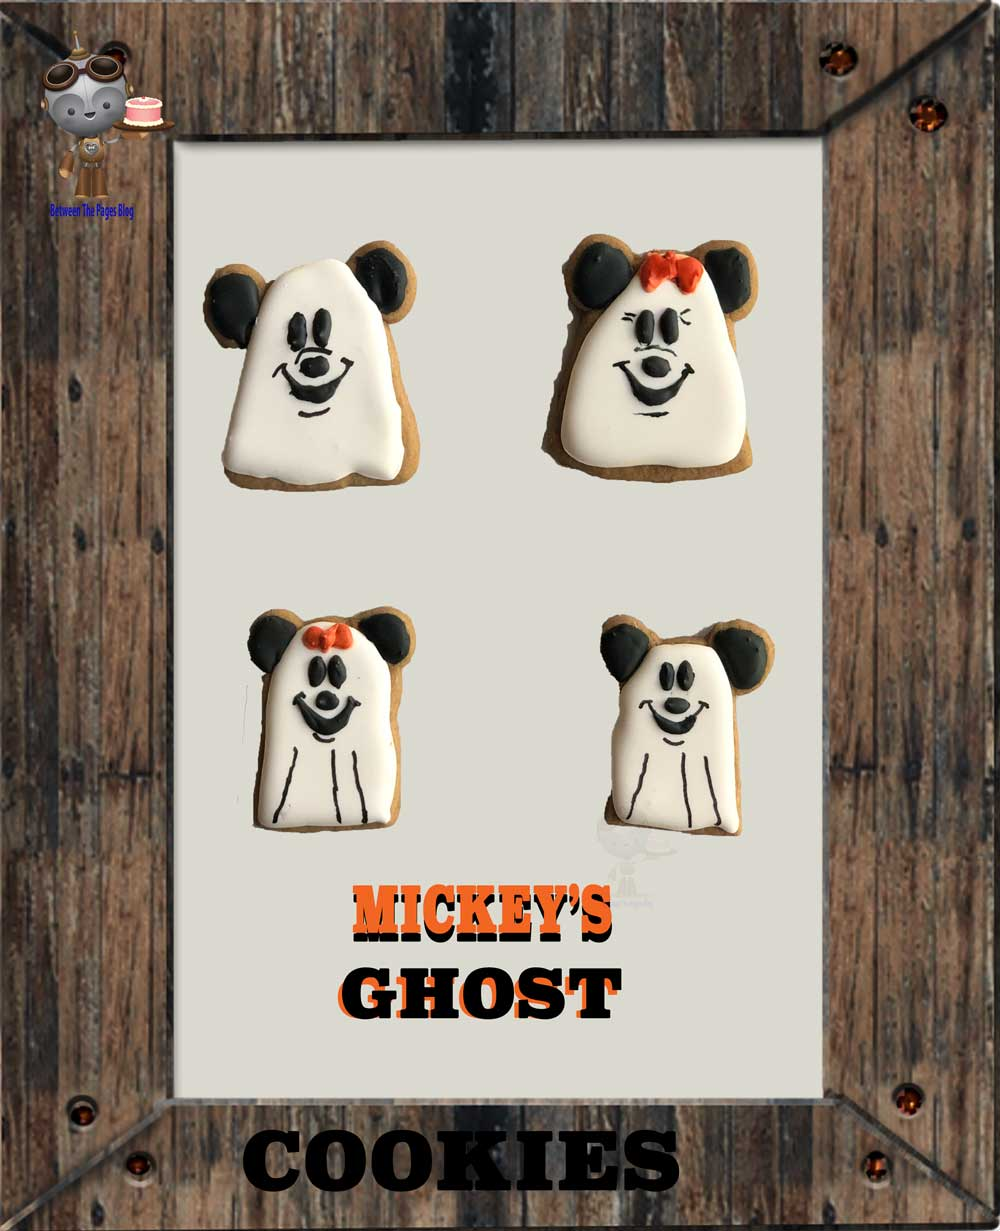 Mickey and Minnie Ghost cookies